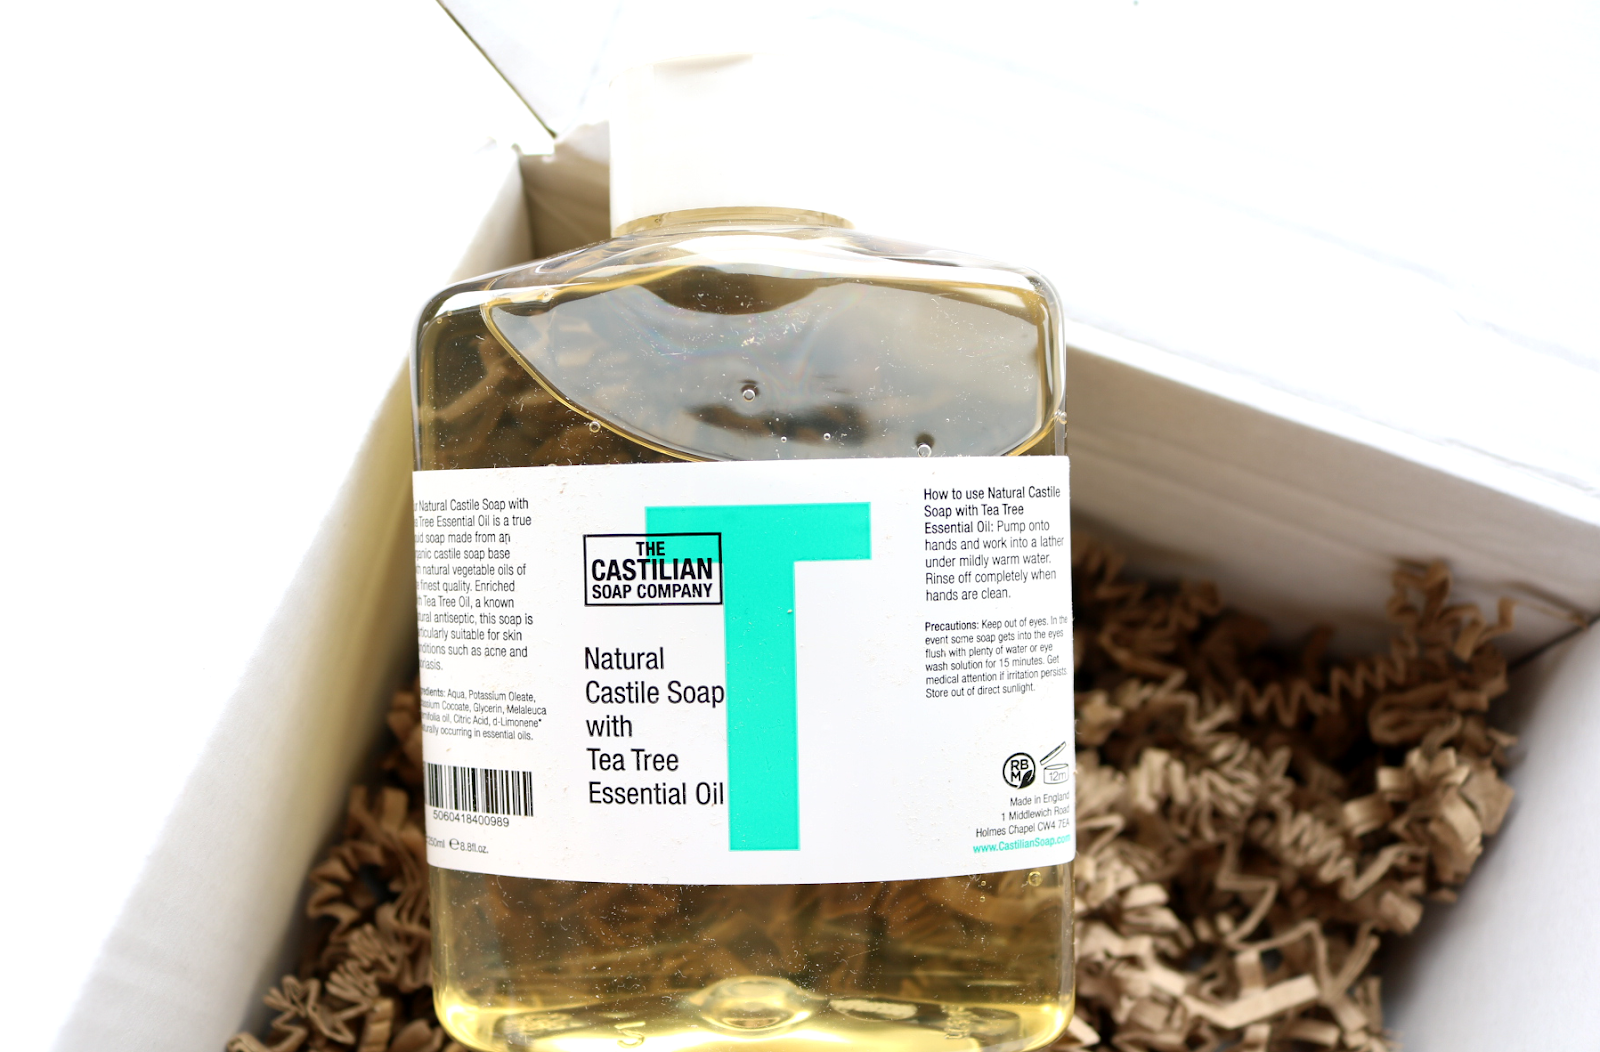 The Castilian Soap Company - Limited Edition Natural Castile Soap with Tea Tree